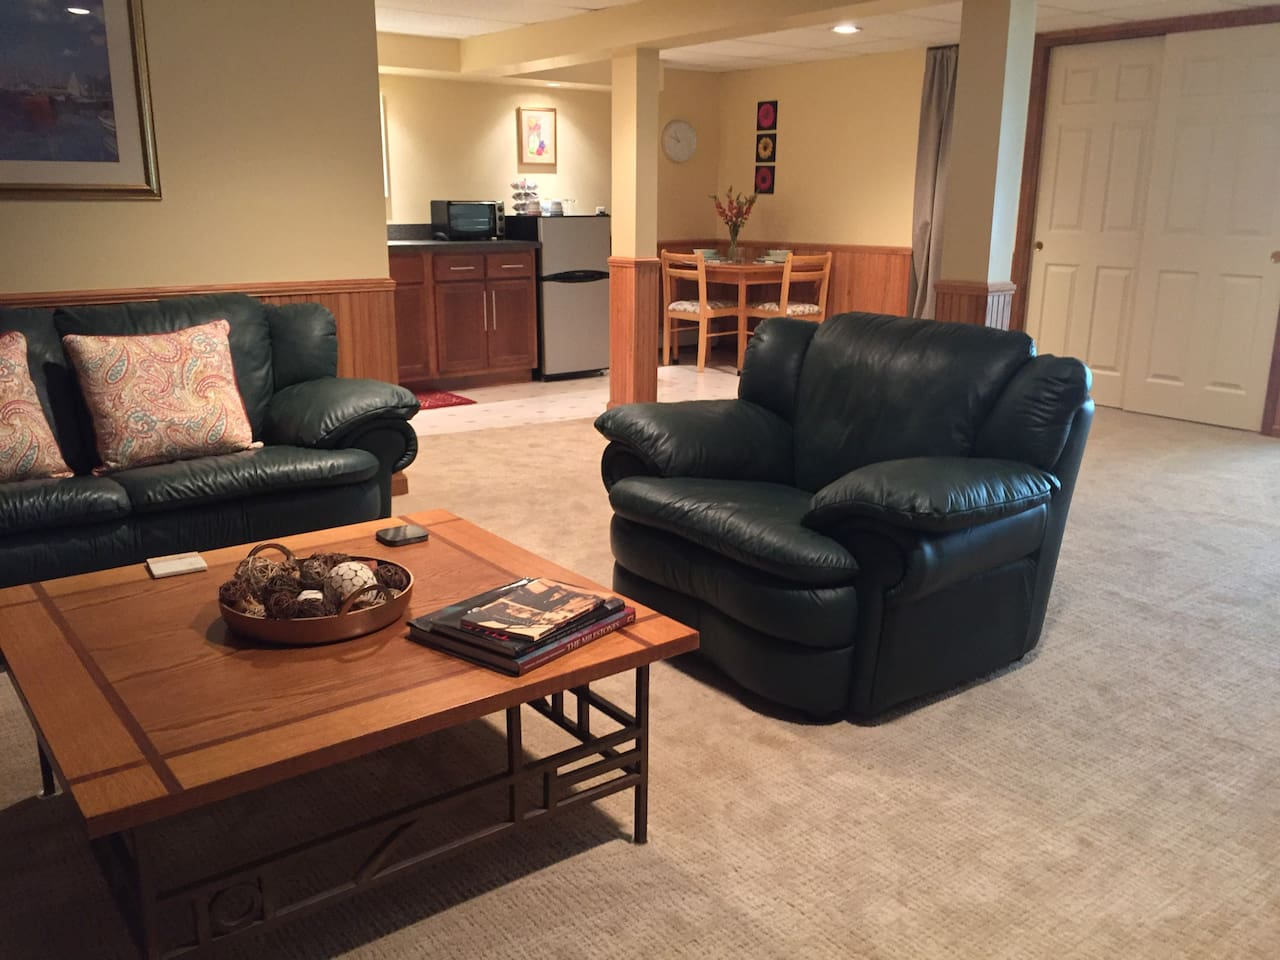 Newly renovated, comfortable relaxing living space